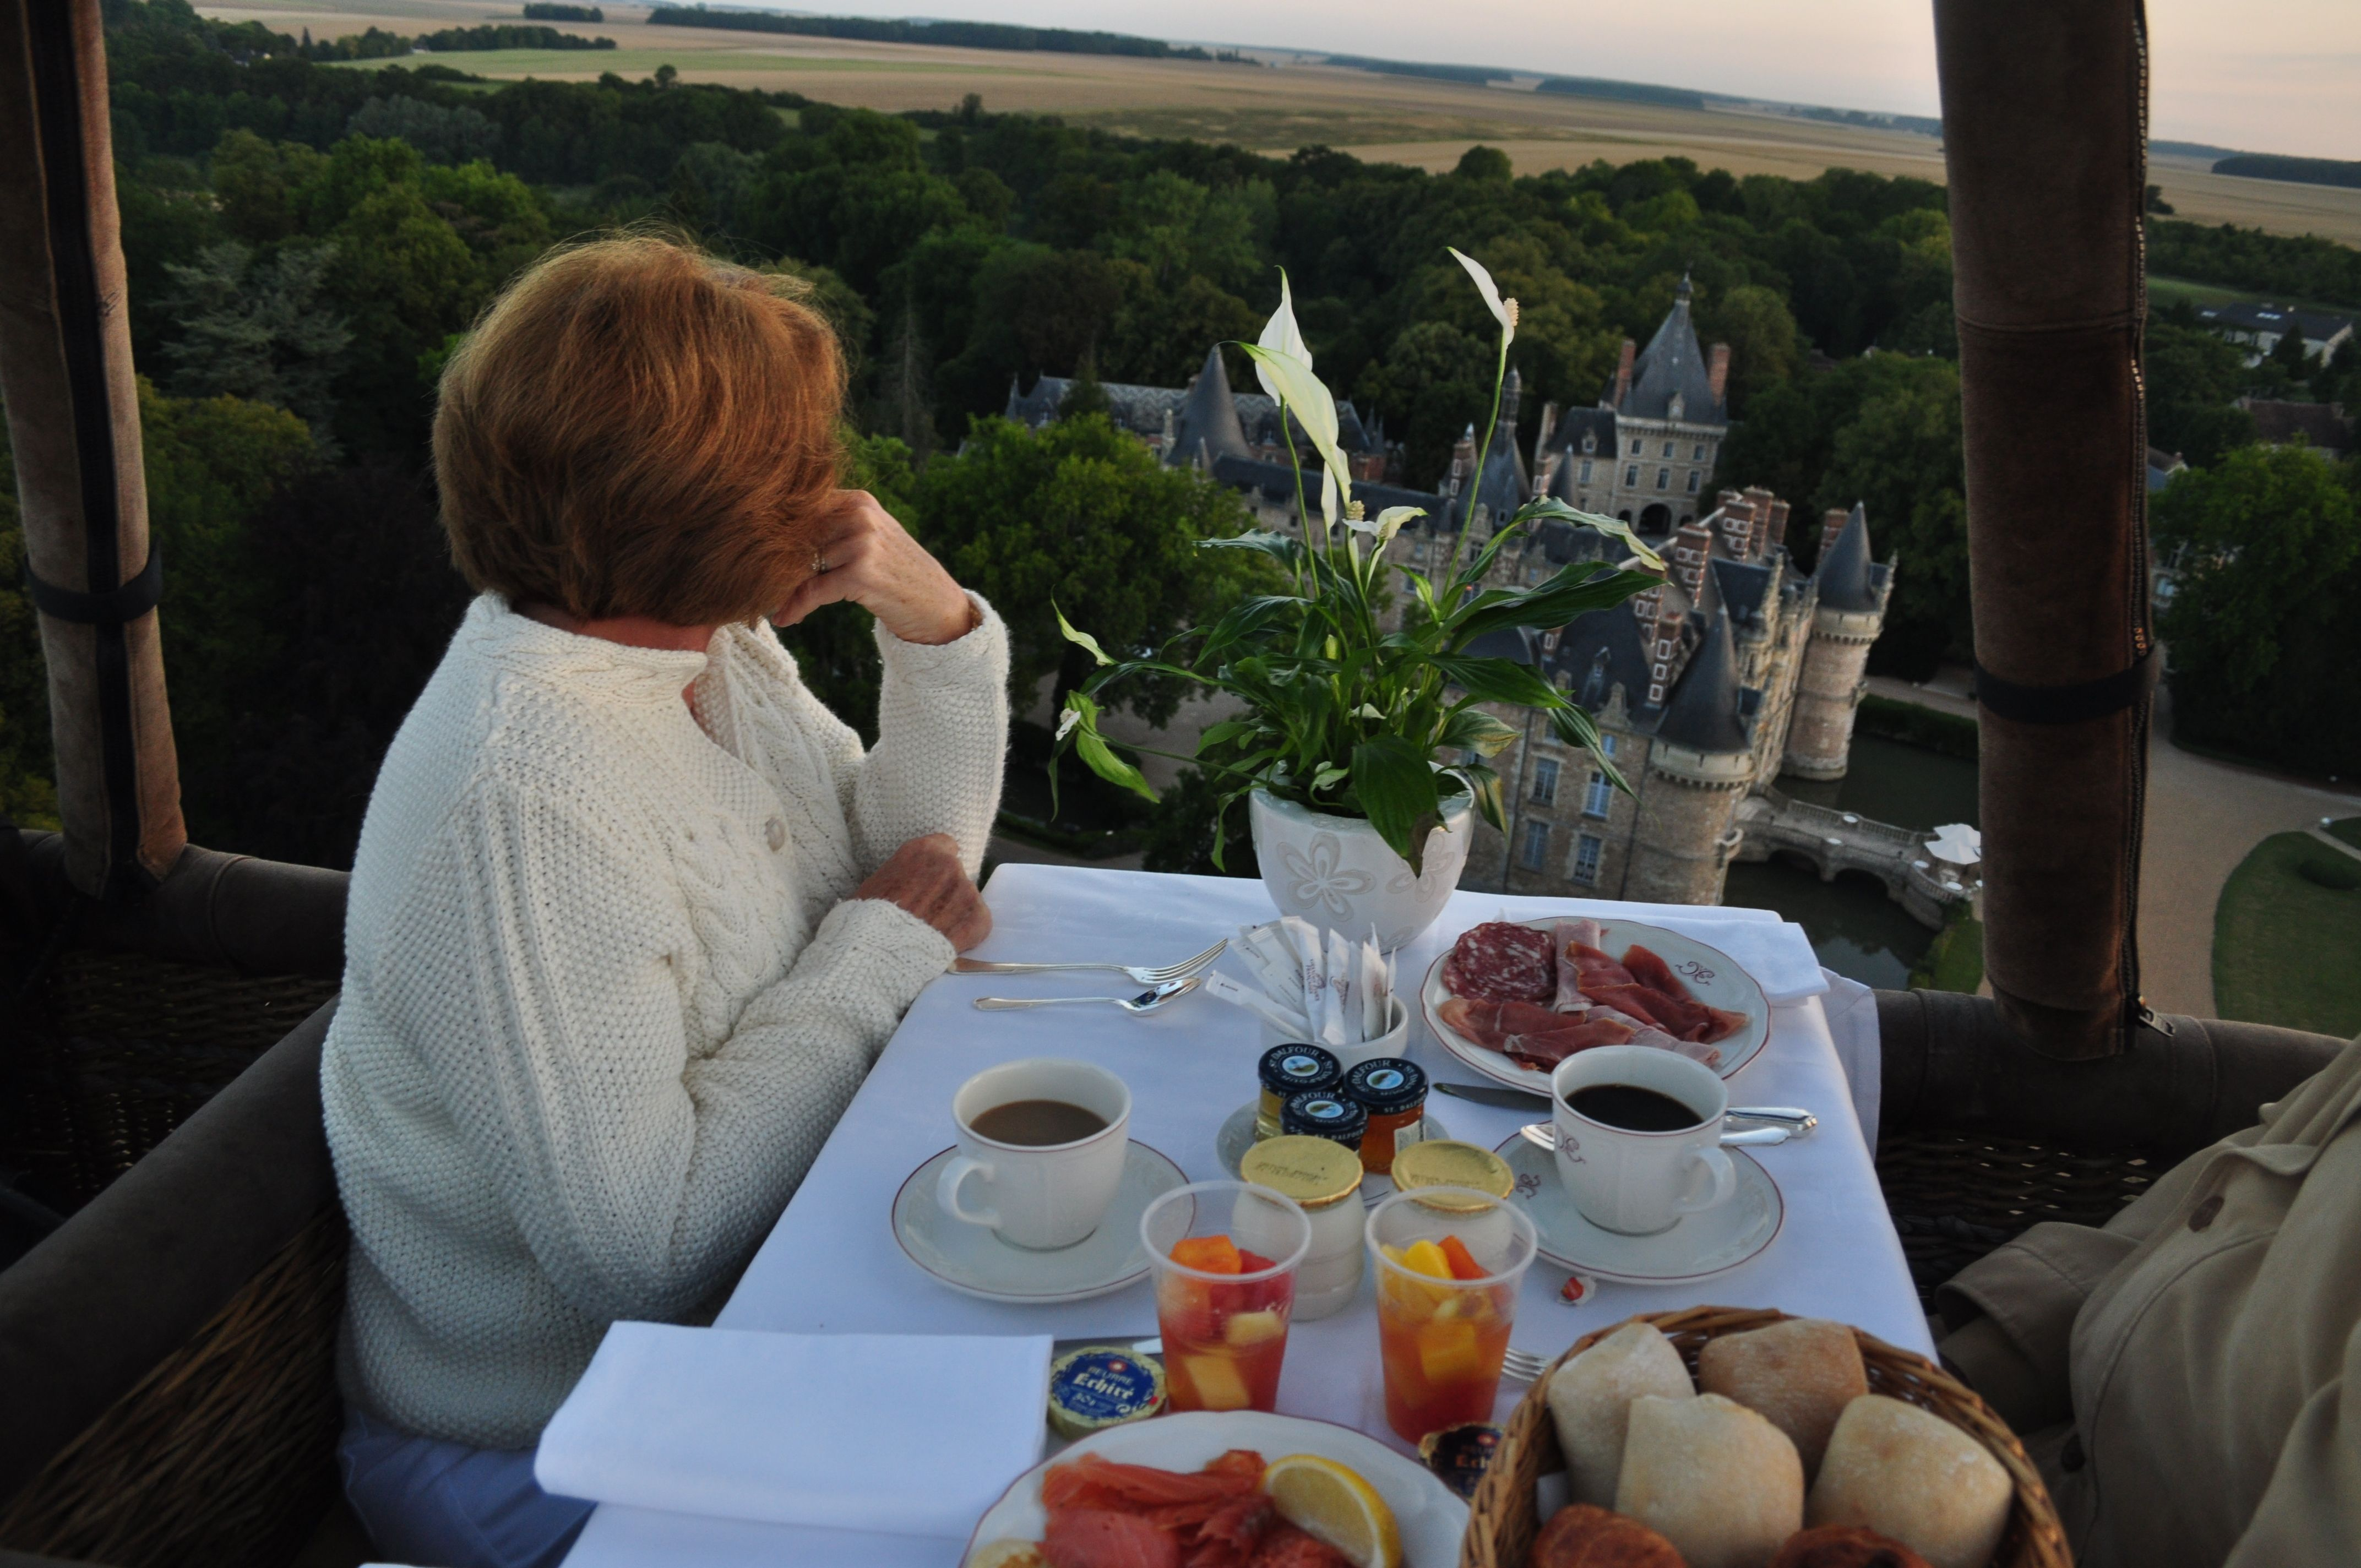 Dinner over a Castle in Hot Air Balloon Montgolfiere